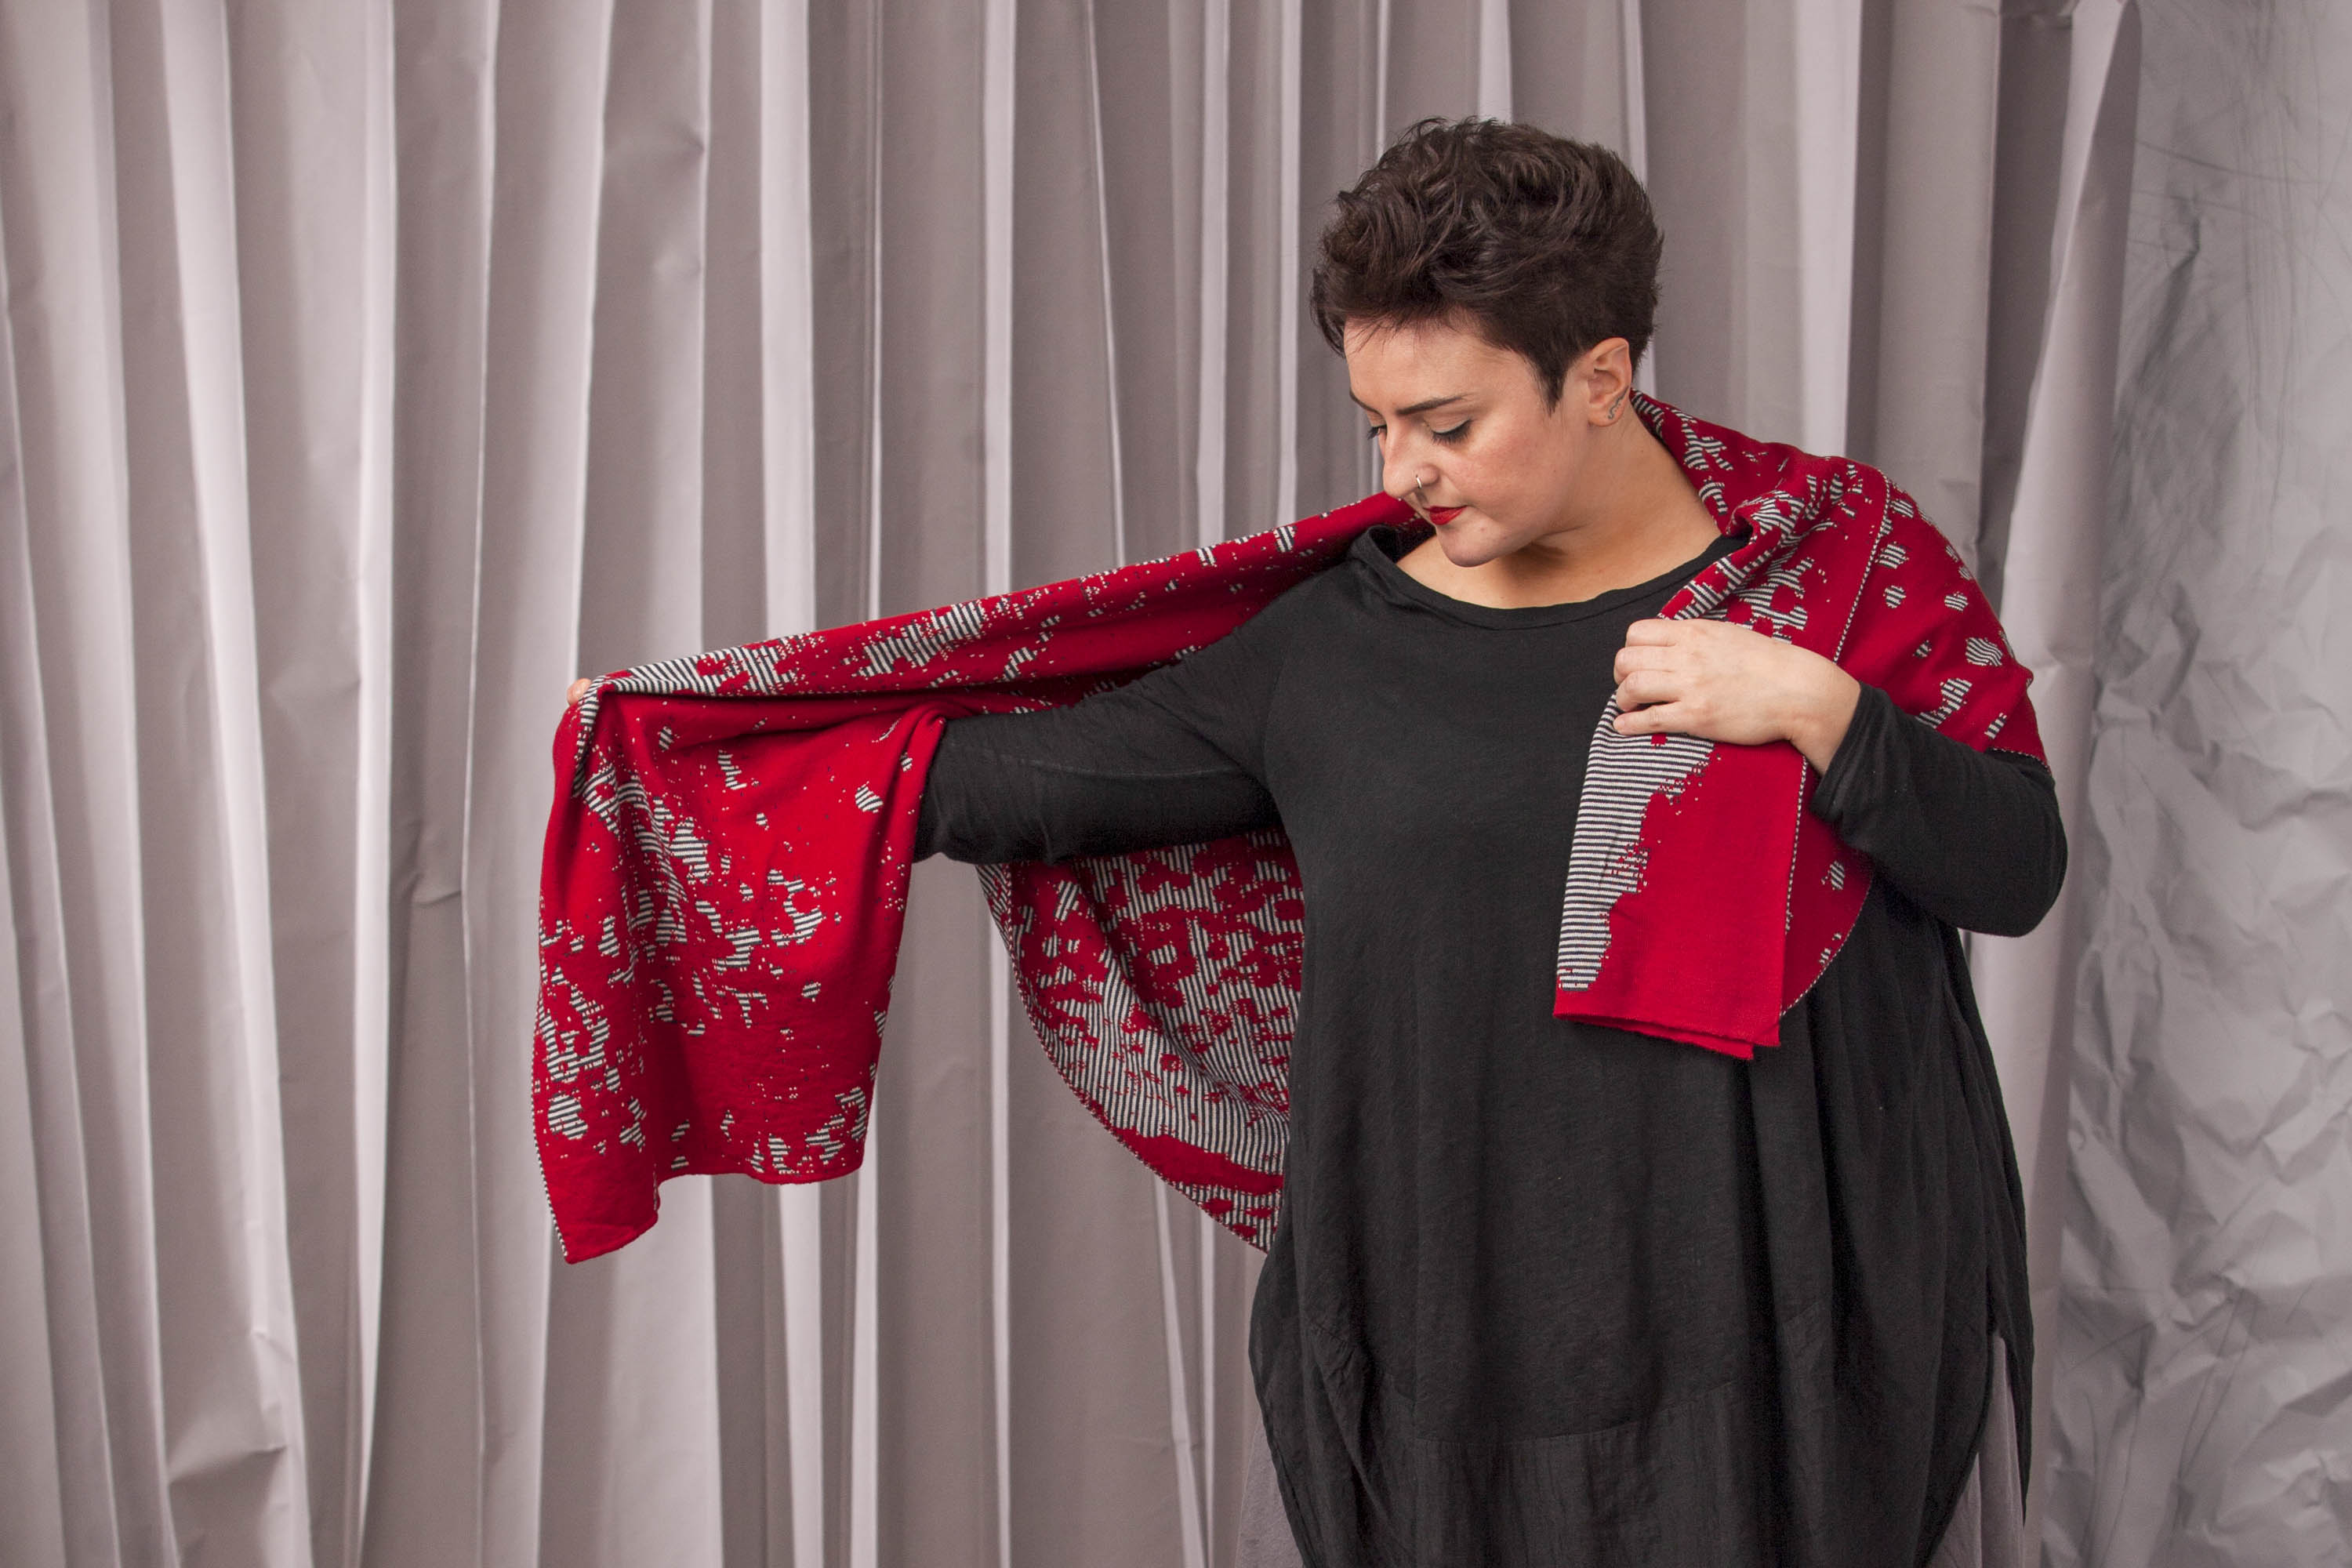 A woman in a loose, black dress wears a large abstract patterned modern Shetland shawl in reds and greys